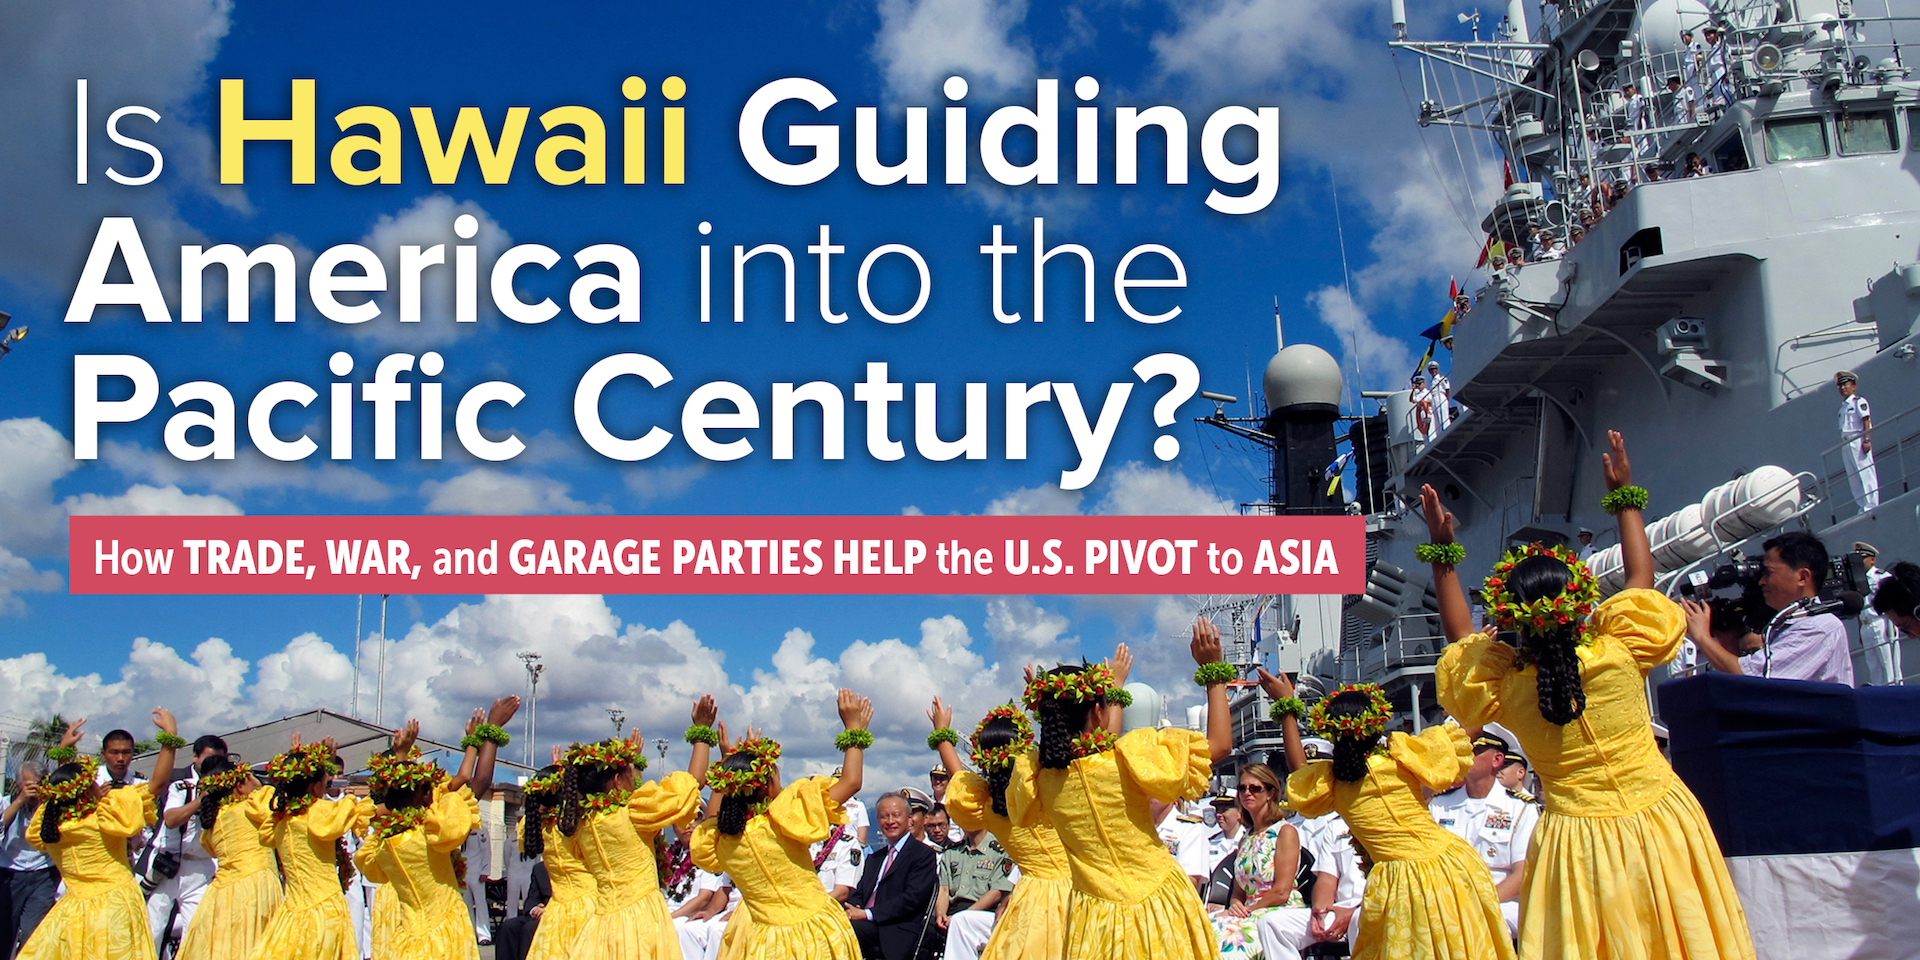 Is Hawaii Guiding America into the Pacific Century?